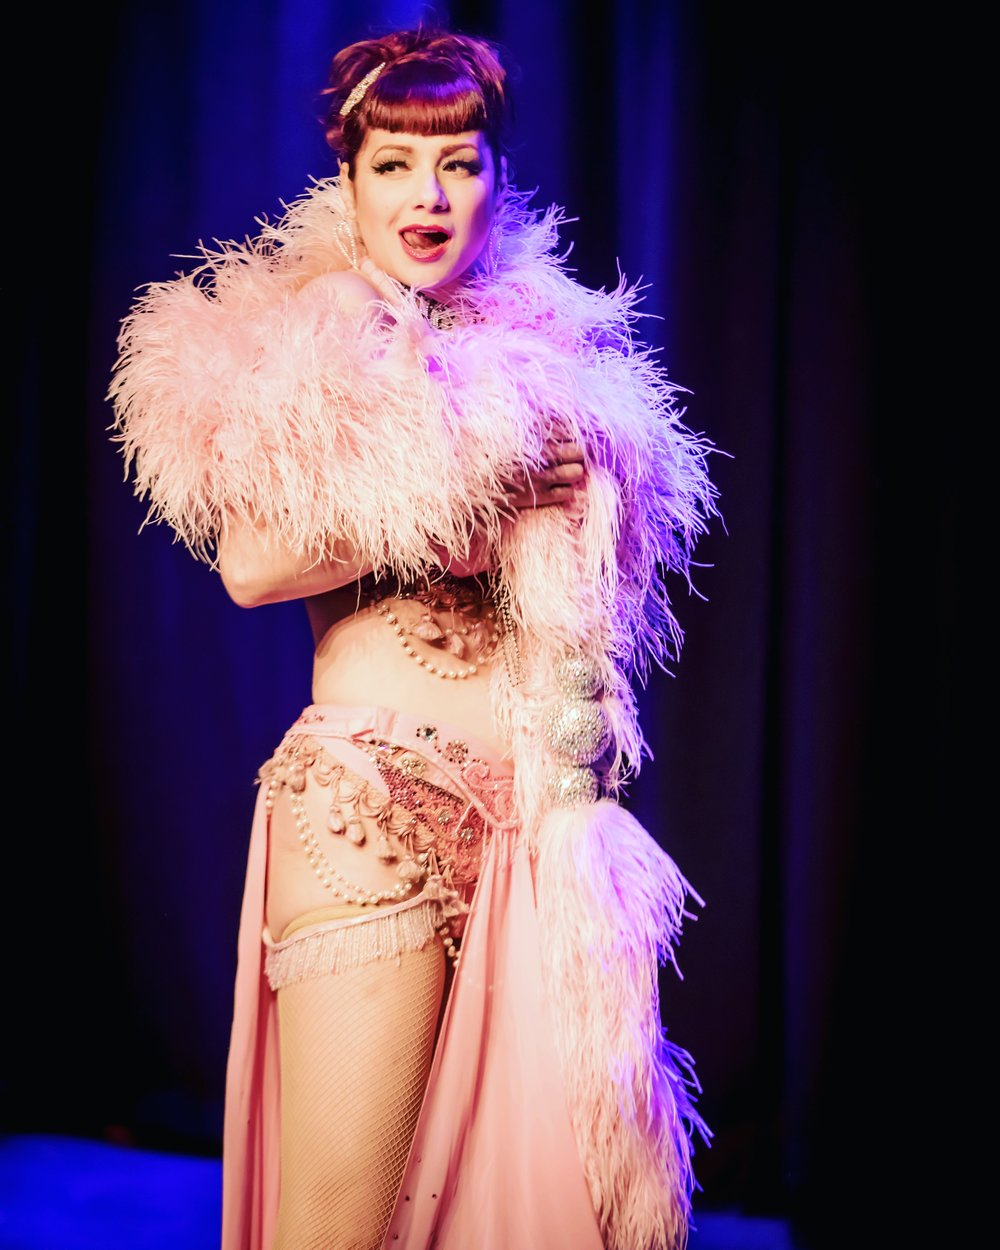 "showgirl - With over 11 years of professional Burlesque experience honed across 16 countries, and using the skills which gained her ""Burlesque Royalty"" status at the 2011 Burlesque Hall of Fame ""Miss Exotic World"" contest in Las Vegas, Anna can customize her enviable repertoire of classic-costumed acts, for your private and corporate events. For this, Anna will work with you to create a custom performance perfectly-suited to your audience and venue."